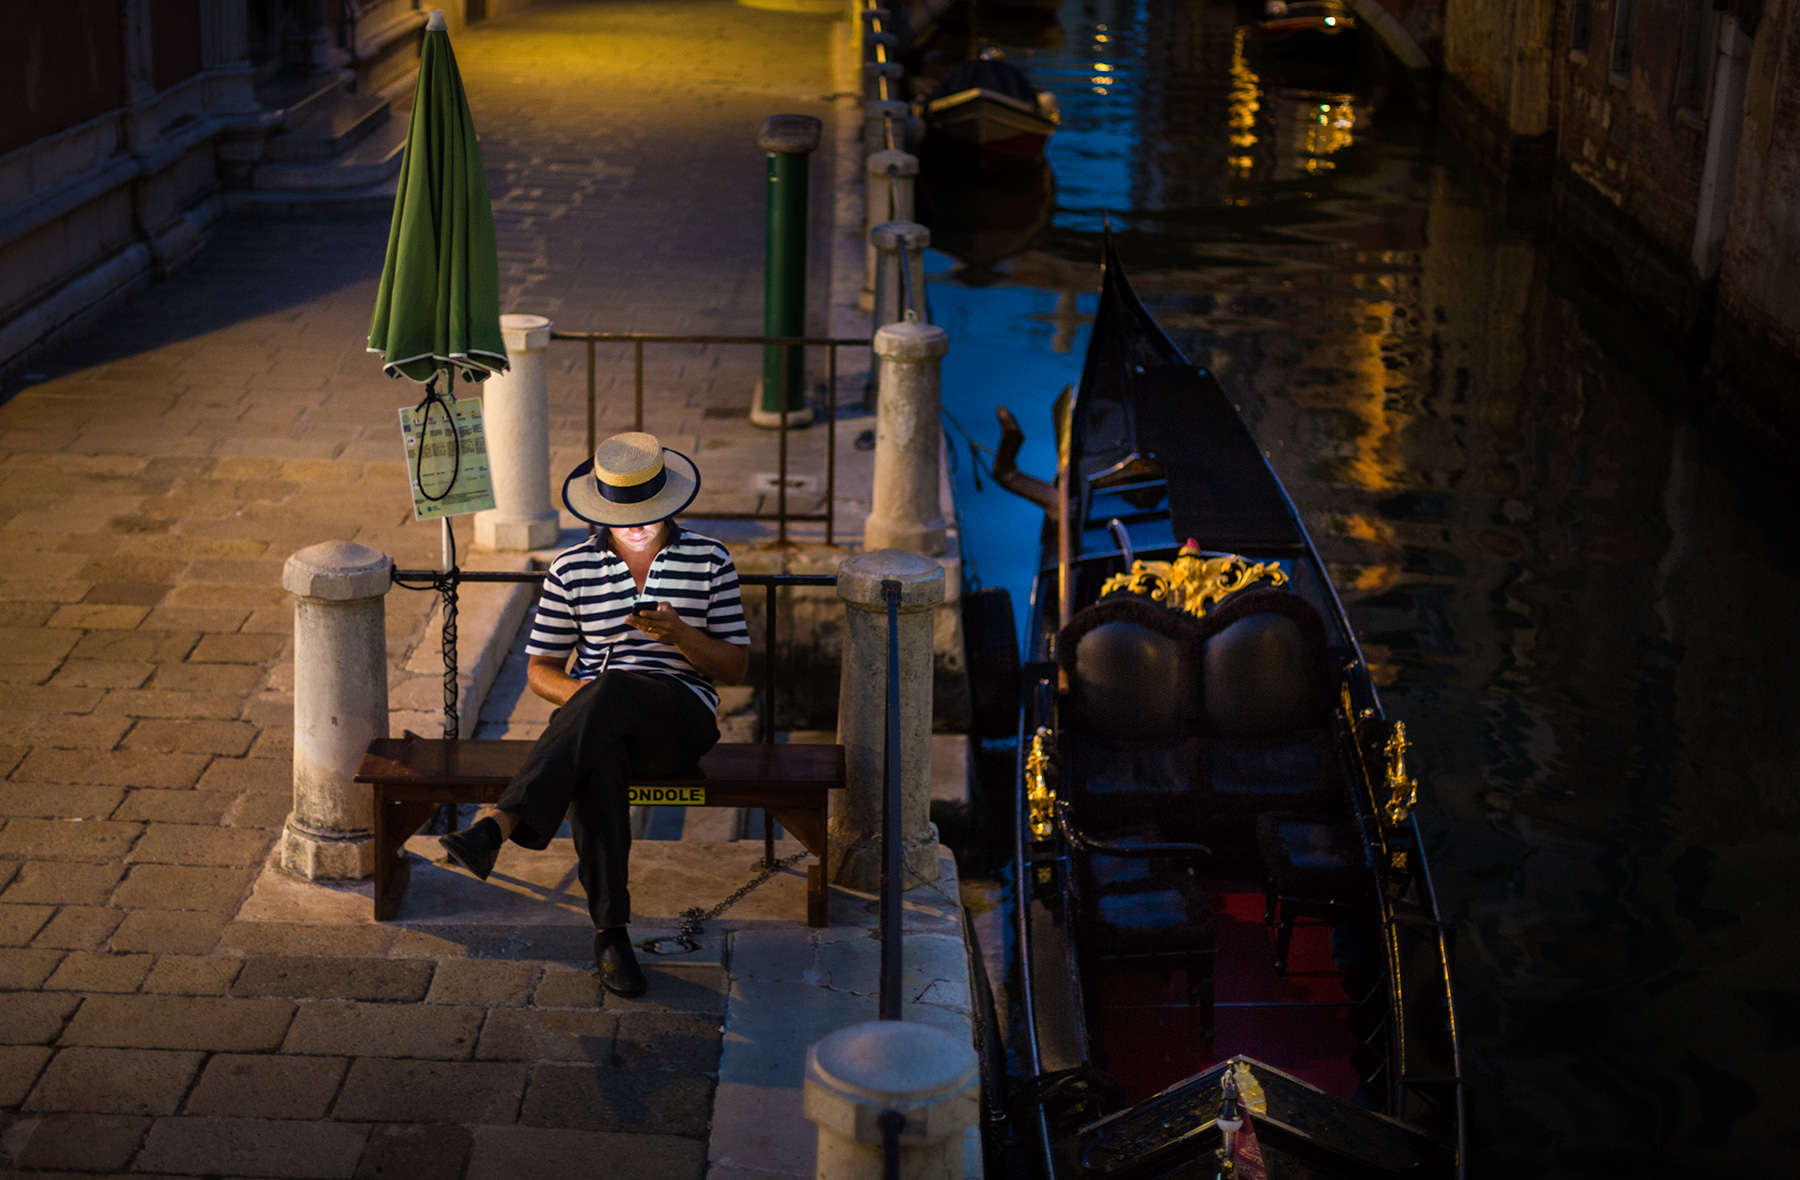 Venezia. Gondoliere at the end of the day. Ready to go home. Rocco Ceselin Travel Photography